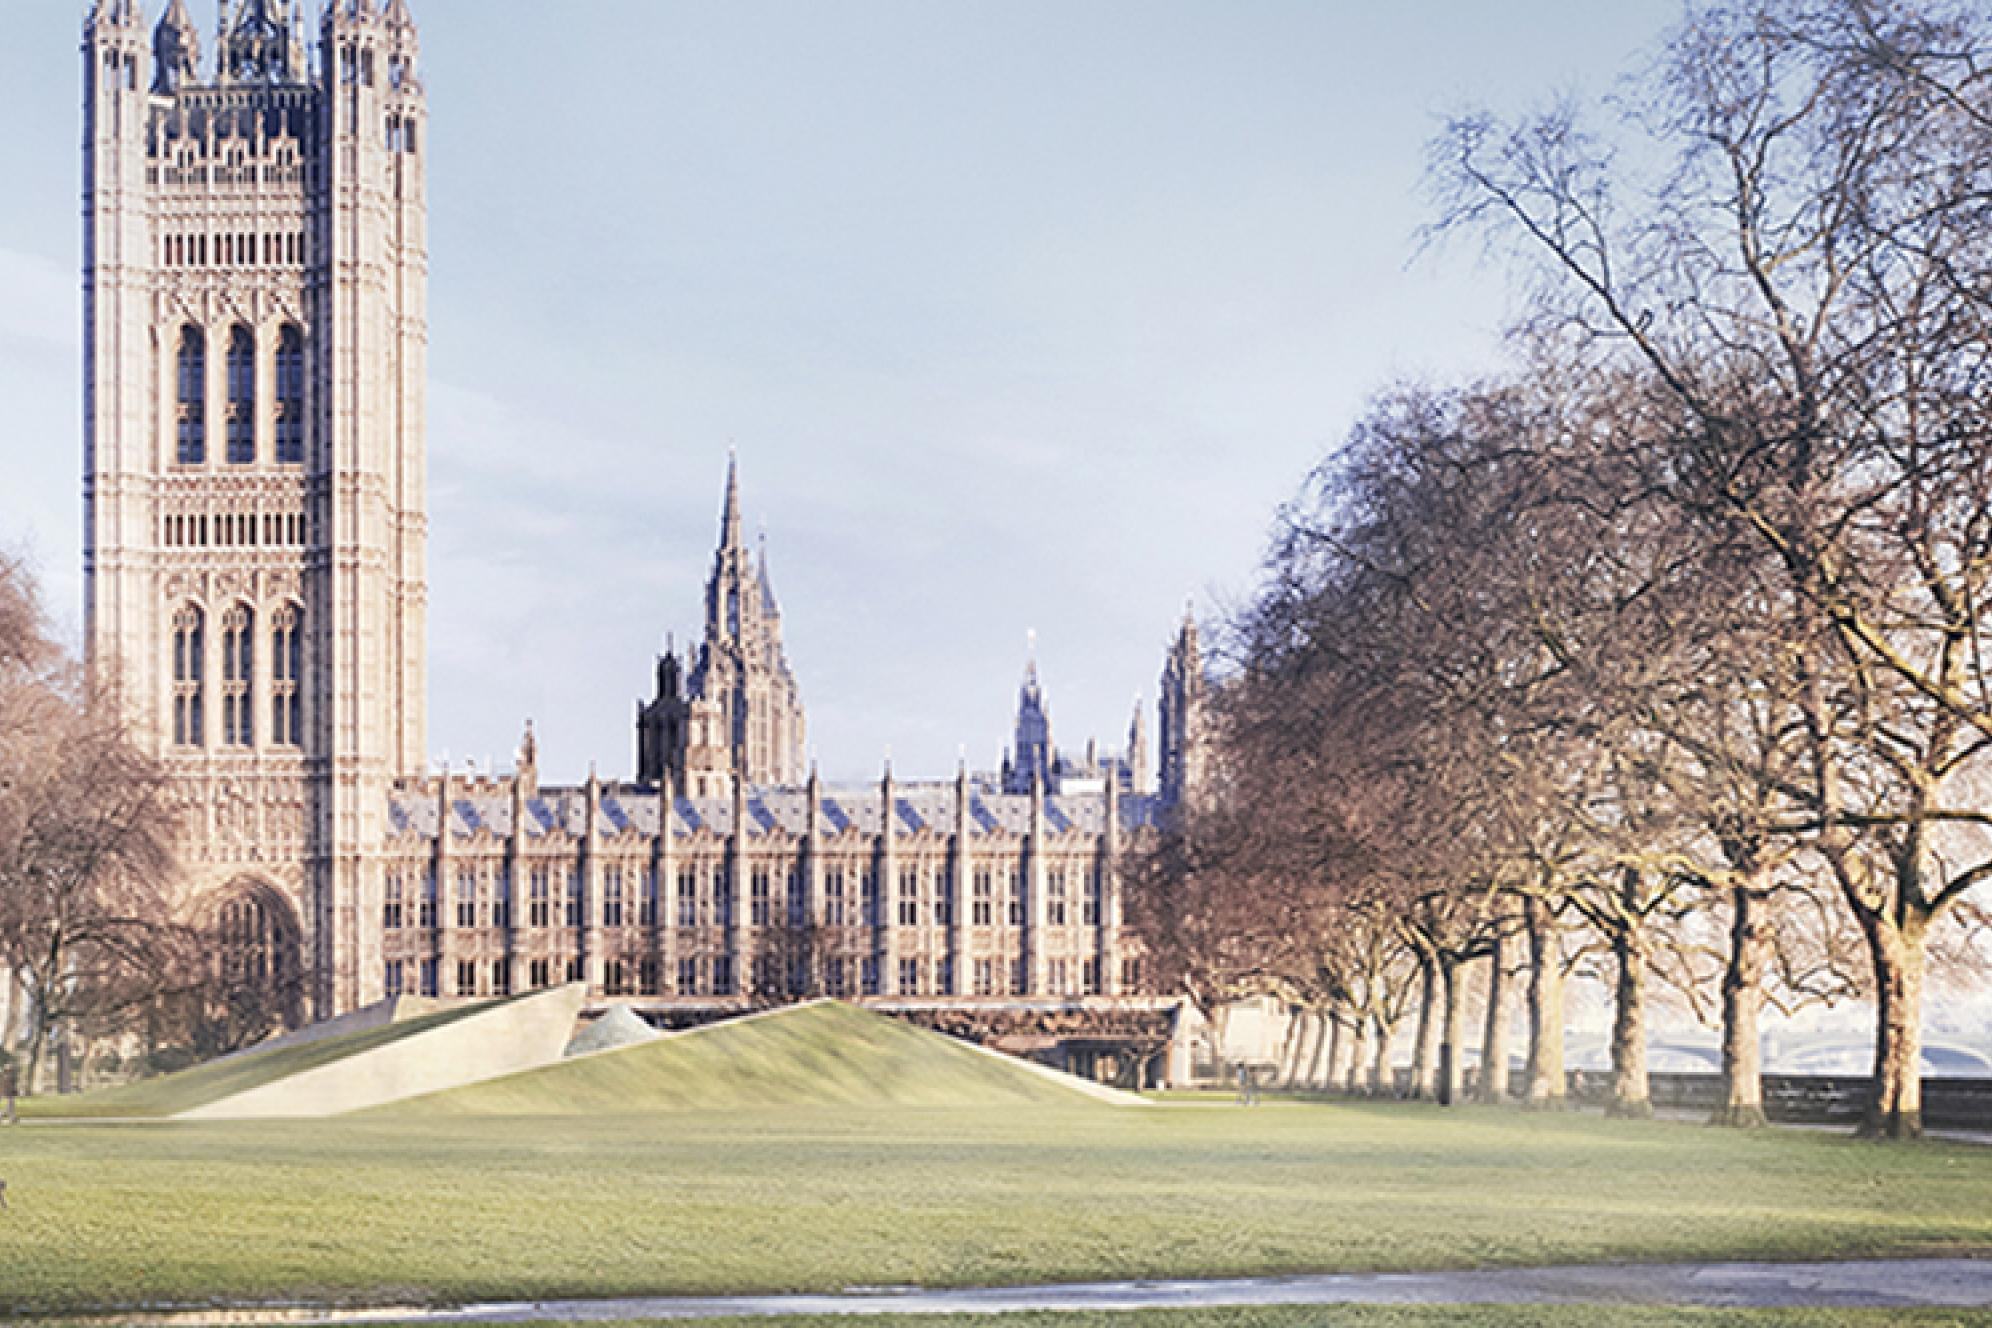 Rendering: View from the Palace of Westminster